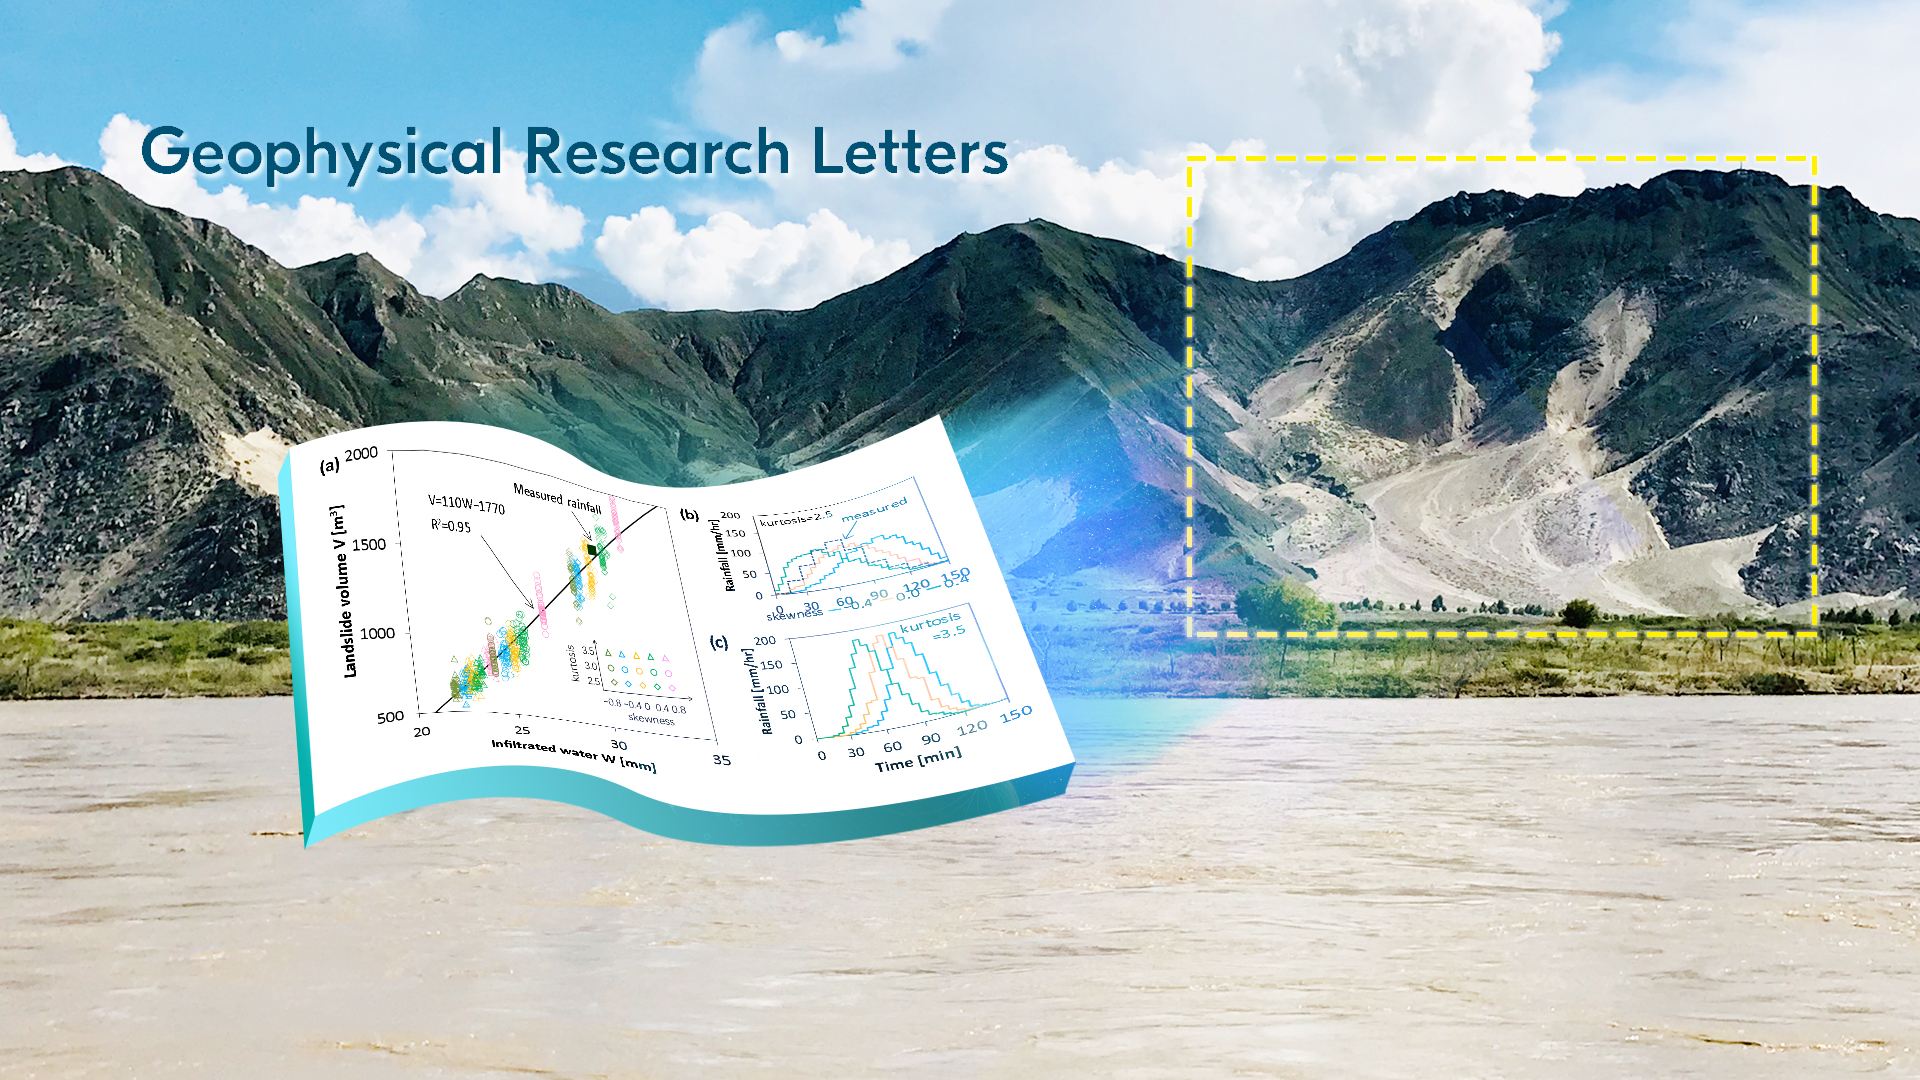 Predicting rainfall-induced landslides becomes easier for all